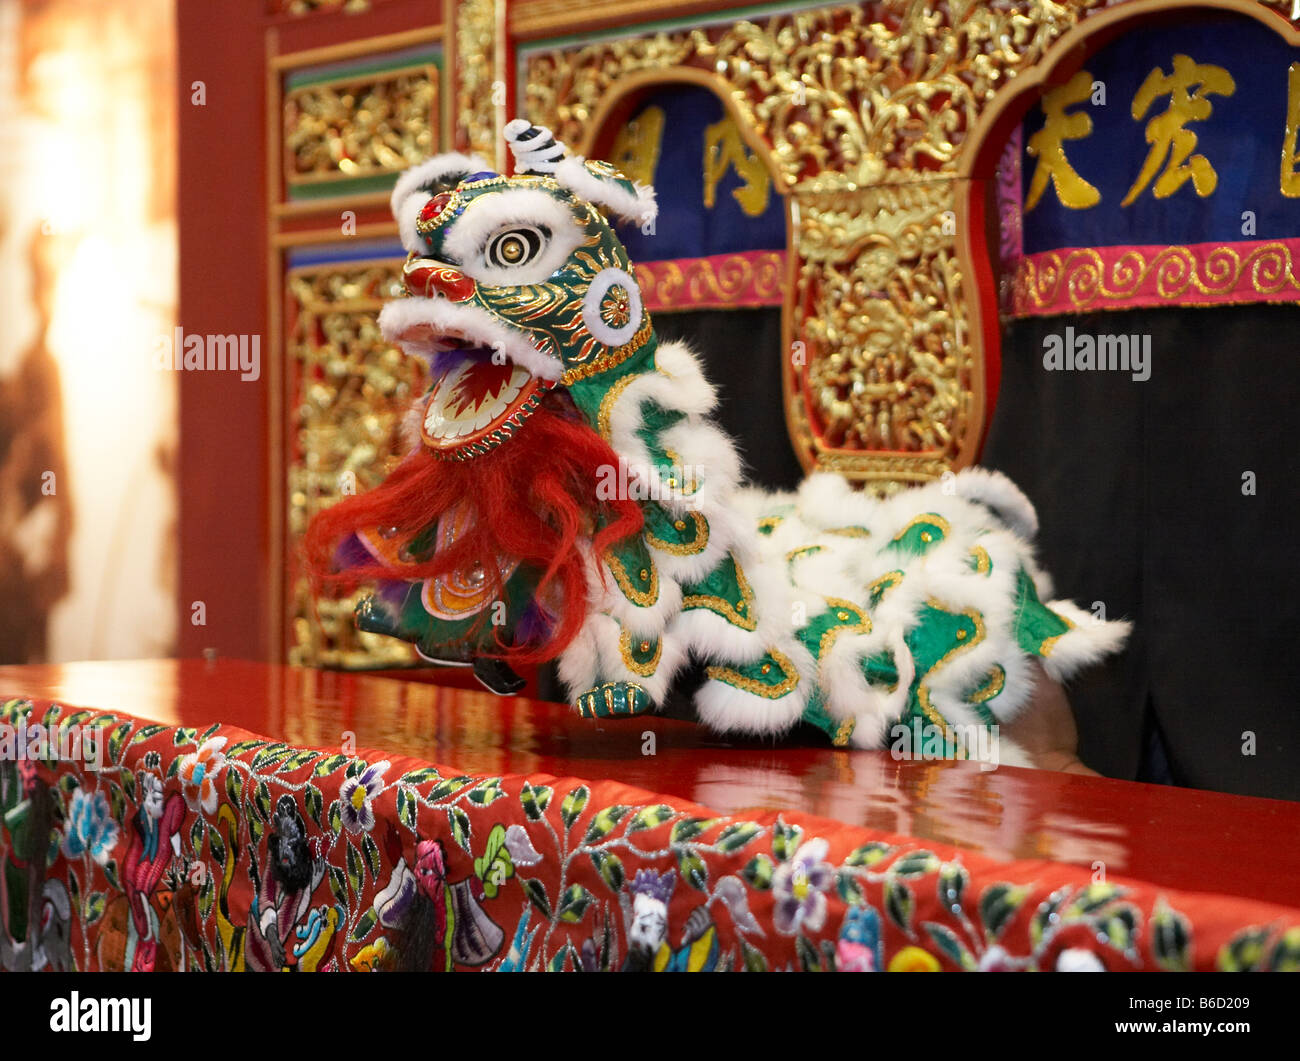 Chinese Dragon Puppet Theatre London Uk Europe Stock Photo: 21185257